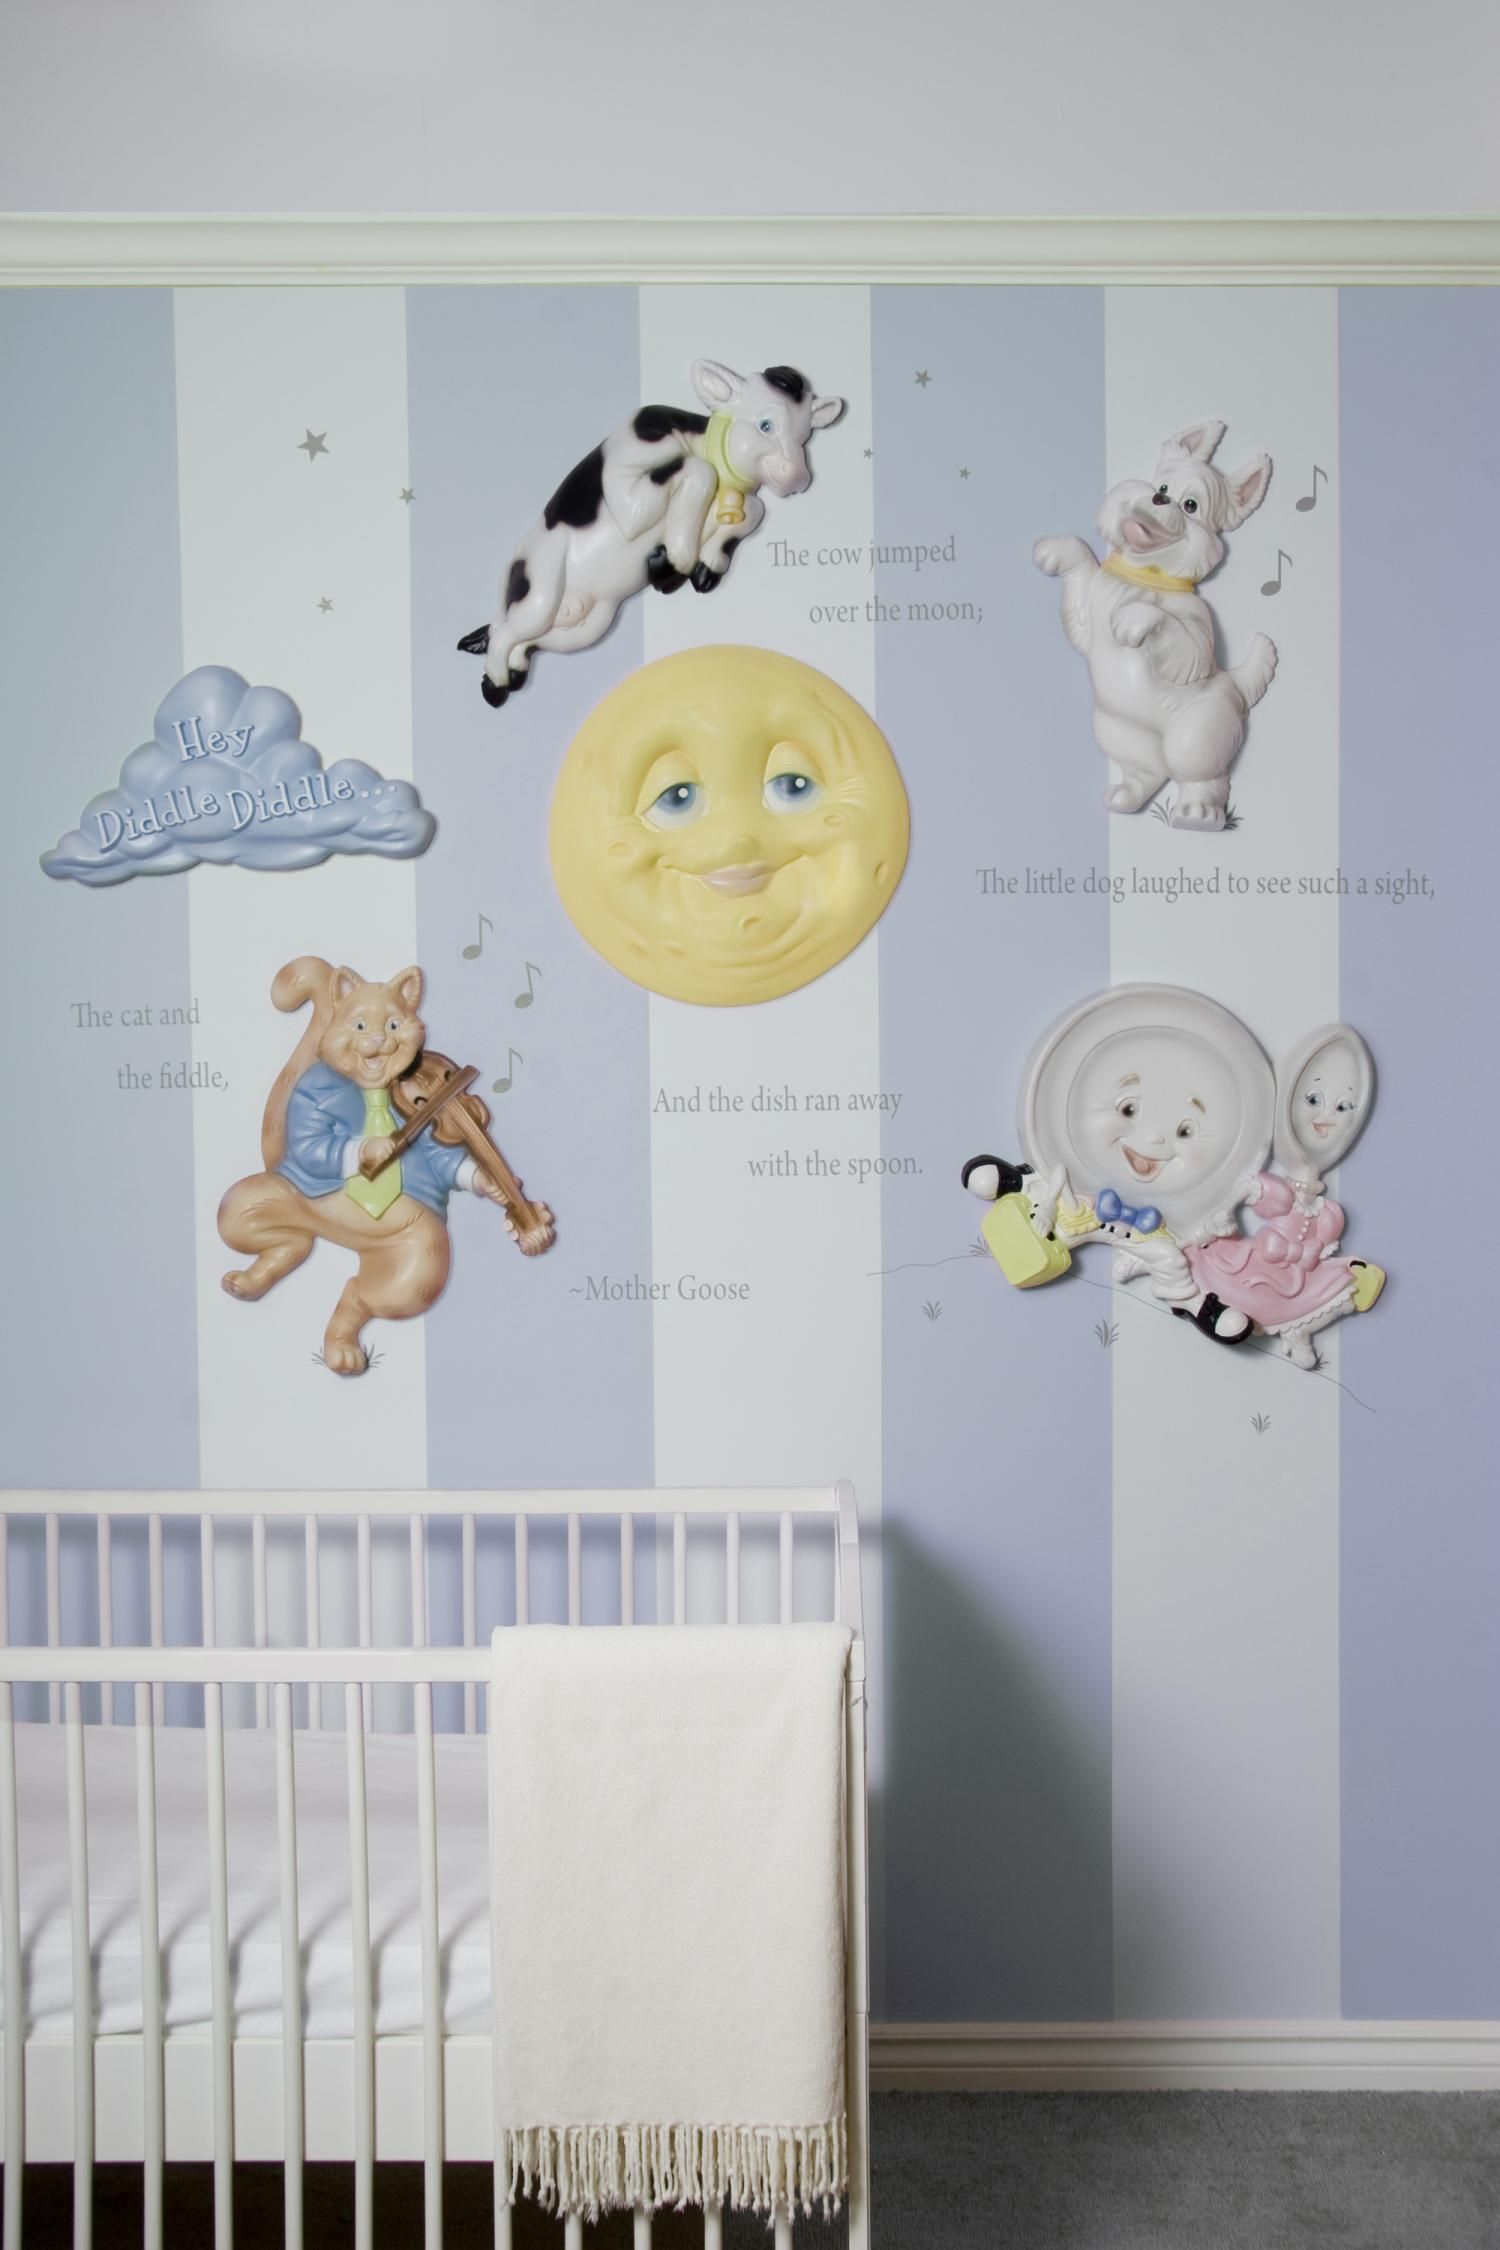 Wall Art And Decor For Living Room: Mother Goose Nursery Rhymes 3D Wall Art Decor By Beetling